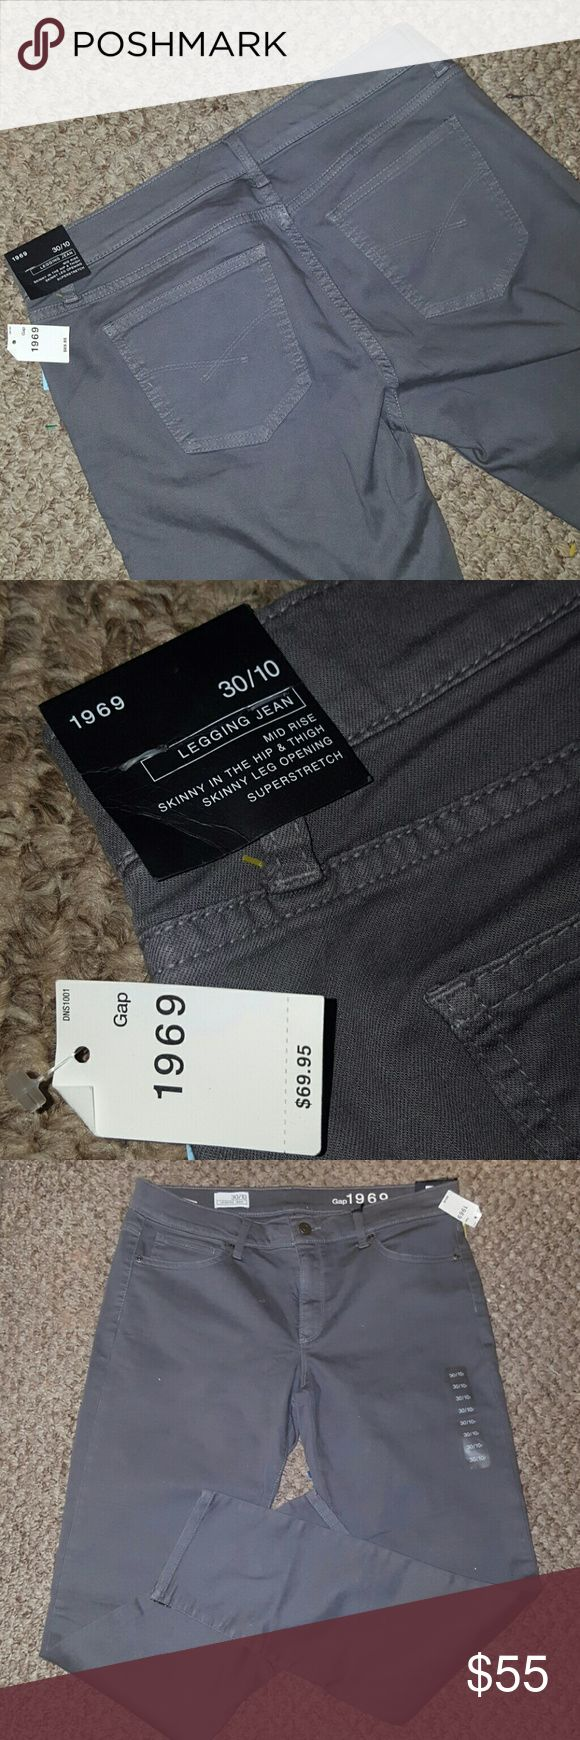 LEGGING GRAY JEANS GAP NWT ~ 30/10R $69.95 Size 10 regular (or 30 if you go by waist) Retailed for $68.95 Gray Legging Jean's by Gap. New with Tags. Never got to wear and I'm moving and must downsize. Fabric is so soft and comfy. Perfect for casual or dressy wear. 85% cotton 13% polyester 2% spandex GAP Jeans Skinny